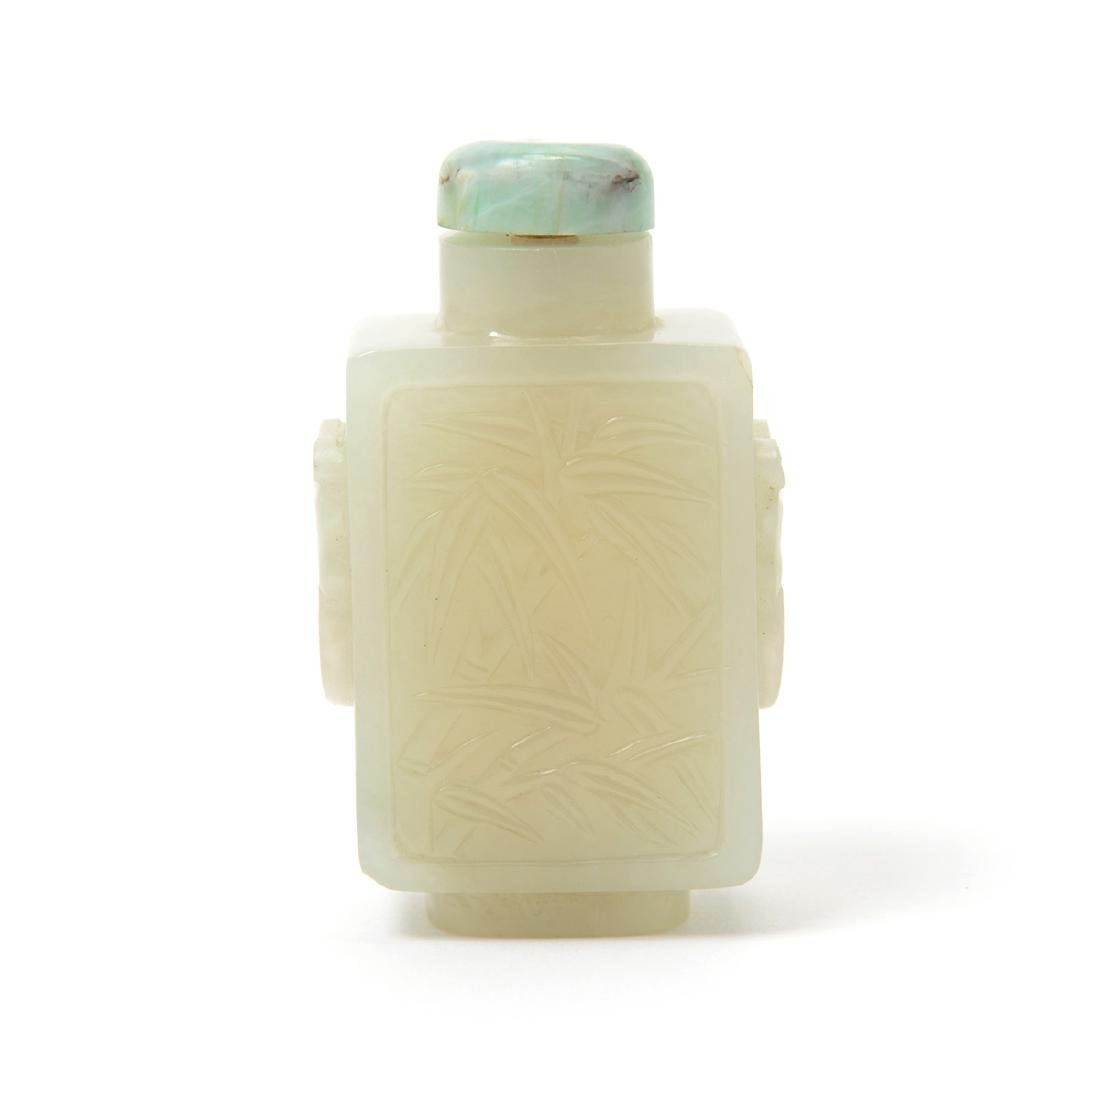 White Jade Snuff Bottle, 18th/19th Century - 2